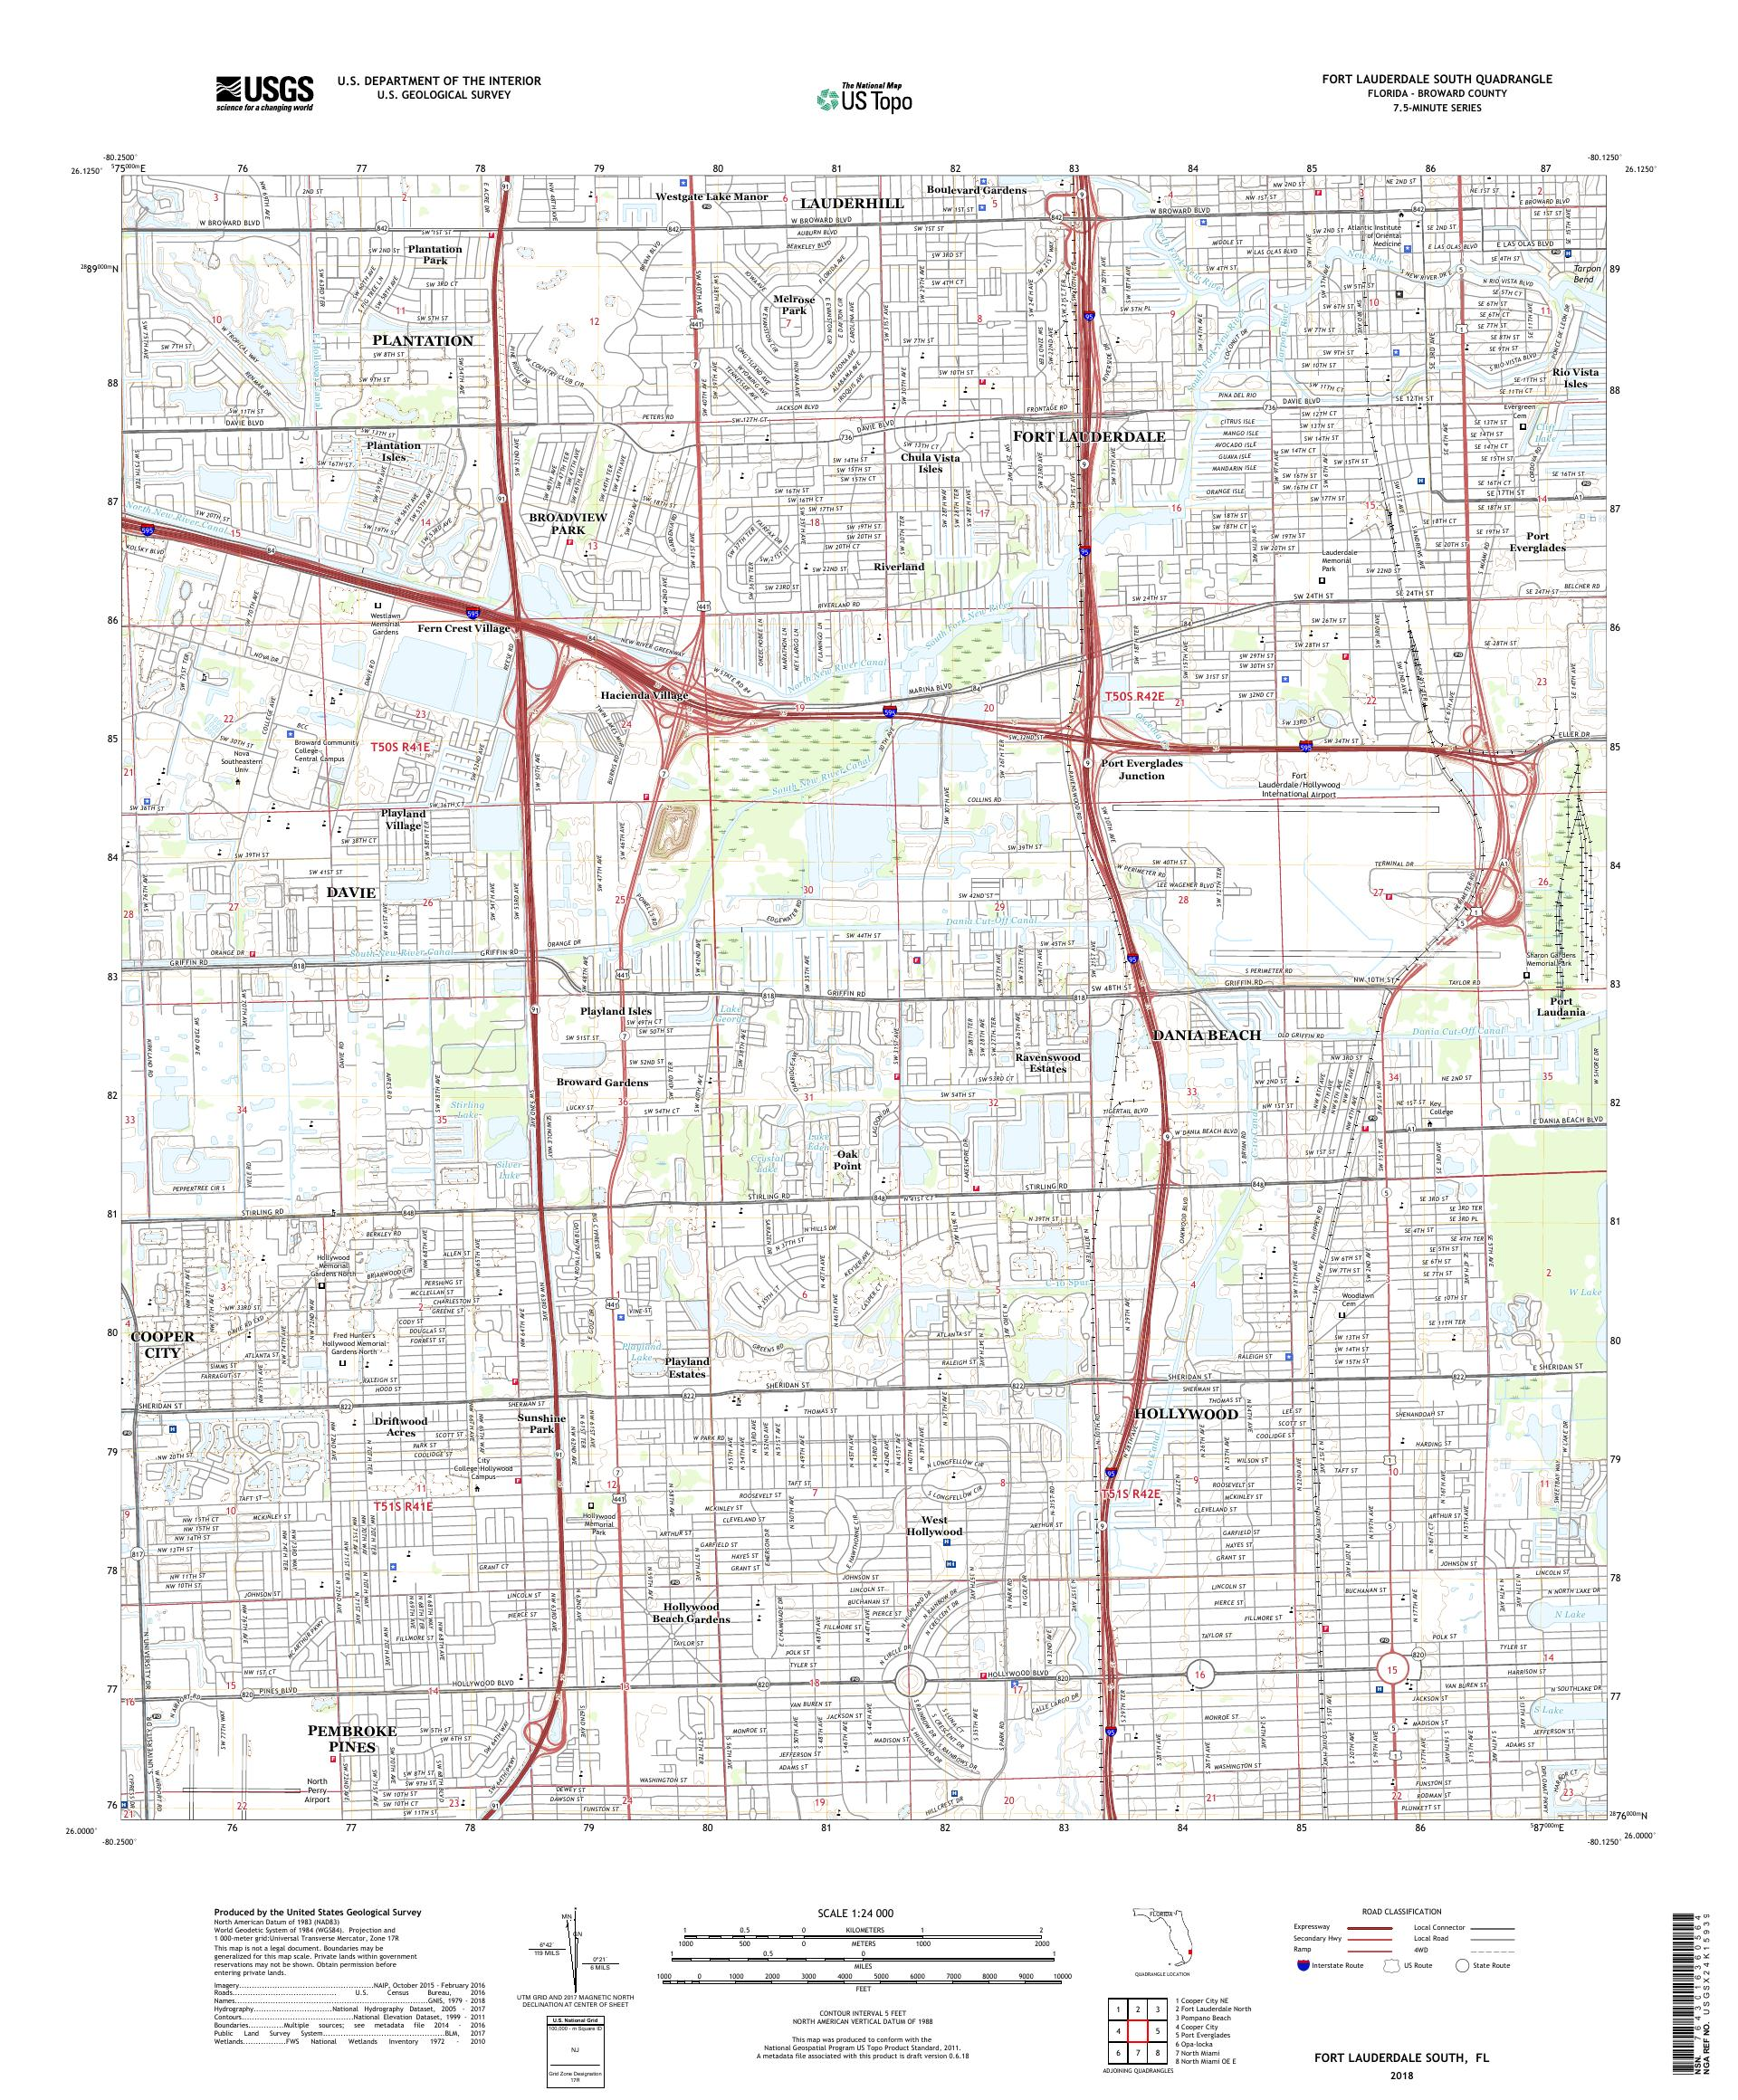 Fort Lauderdale Map Florida.Mytopo Fort Lauderdale South Florida Usgs Quad Topo Map